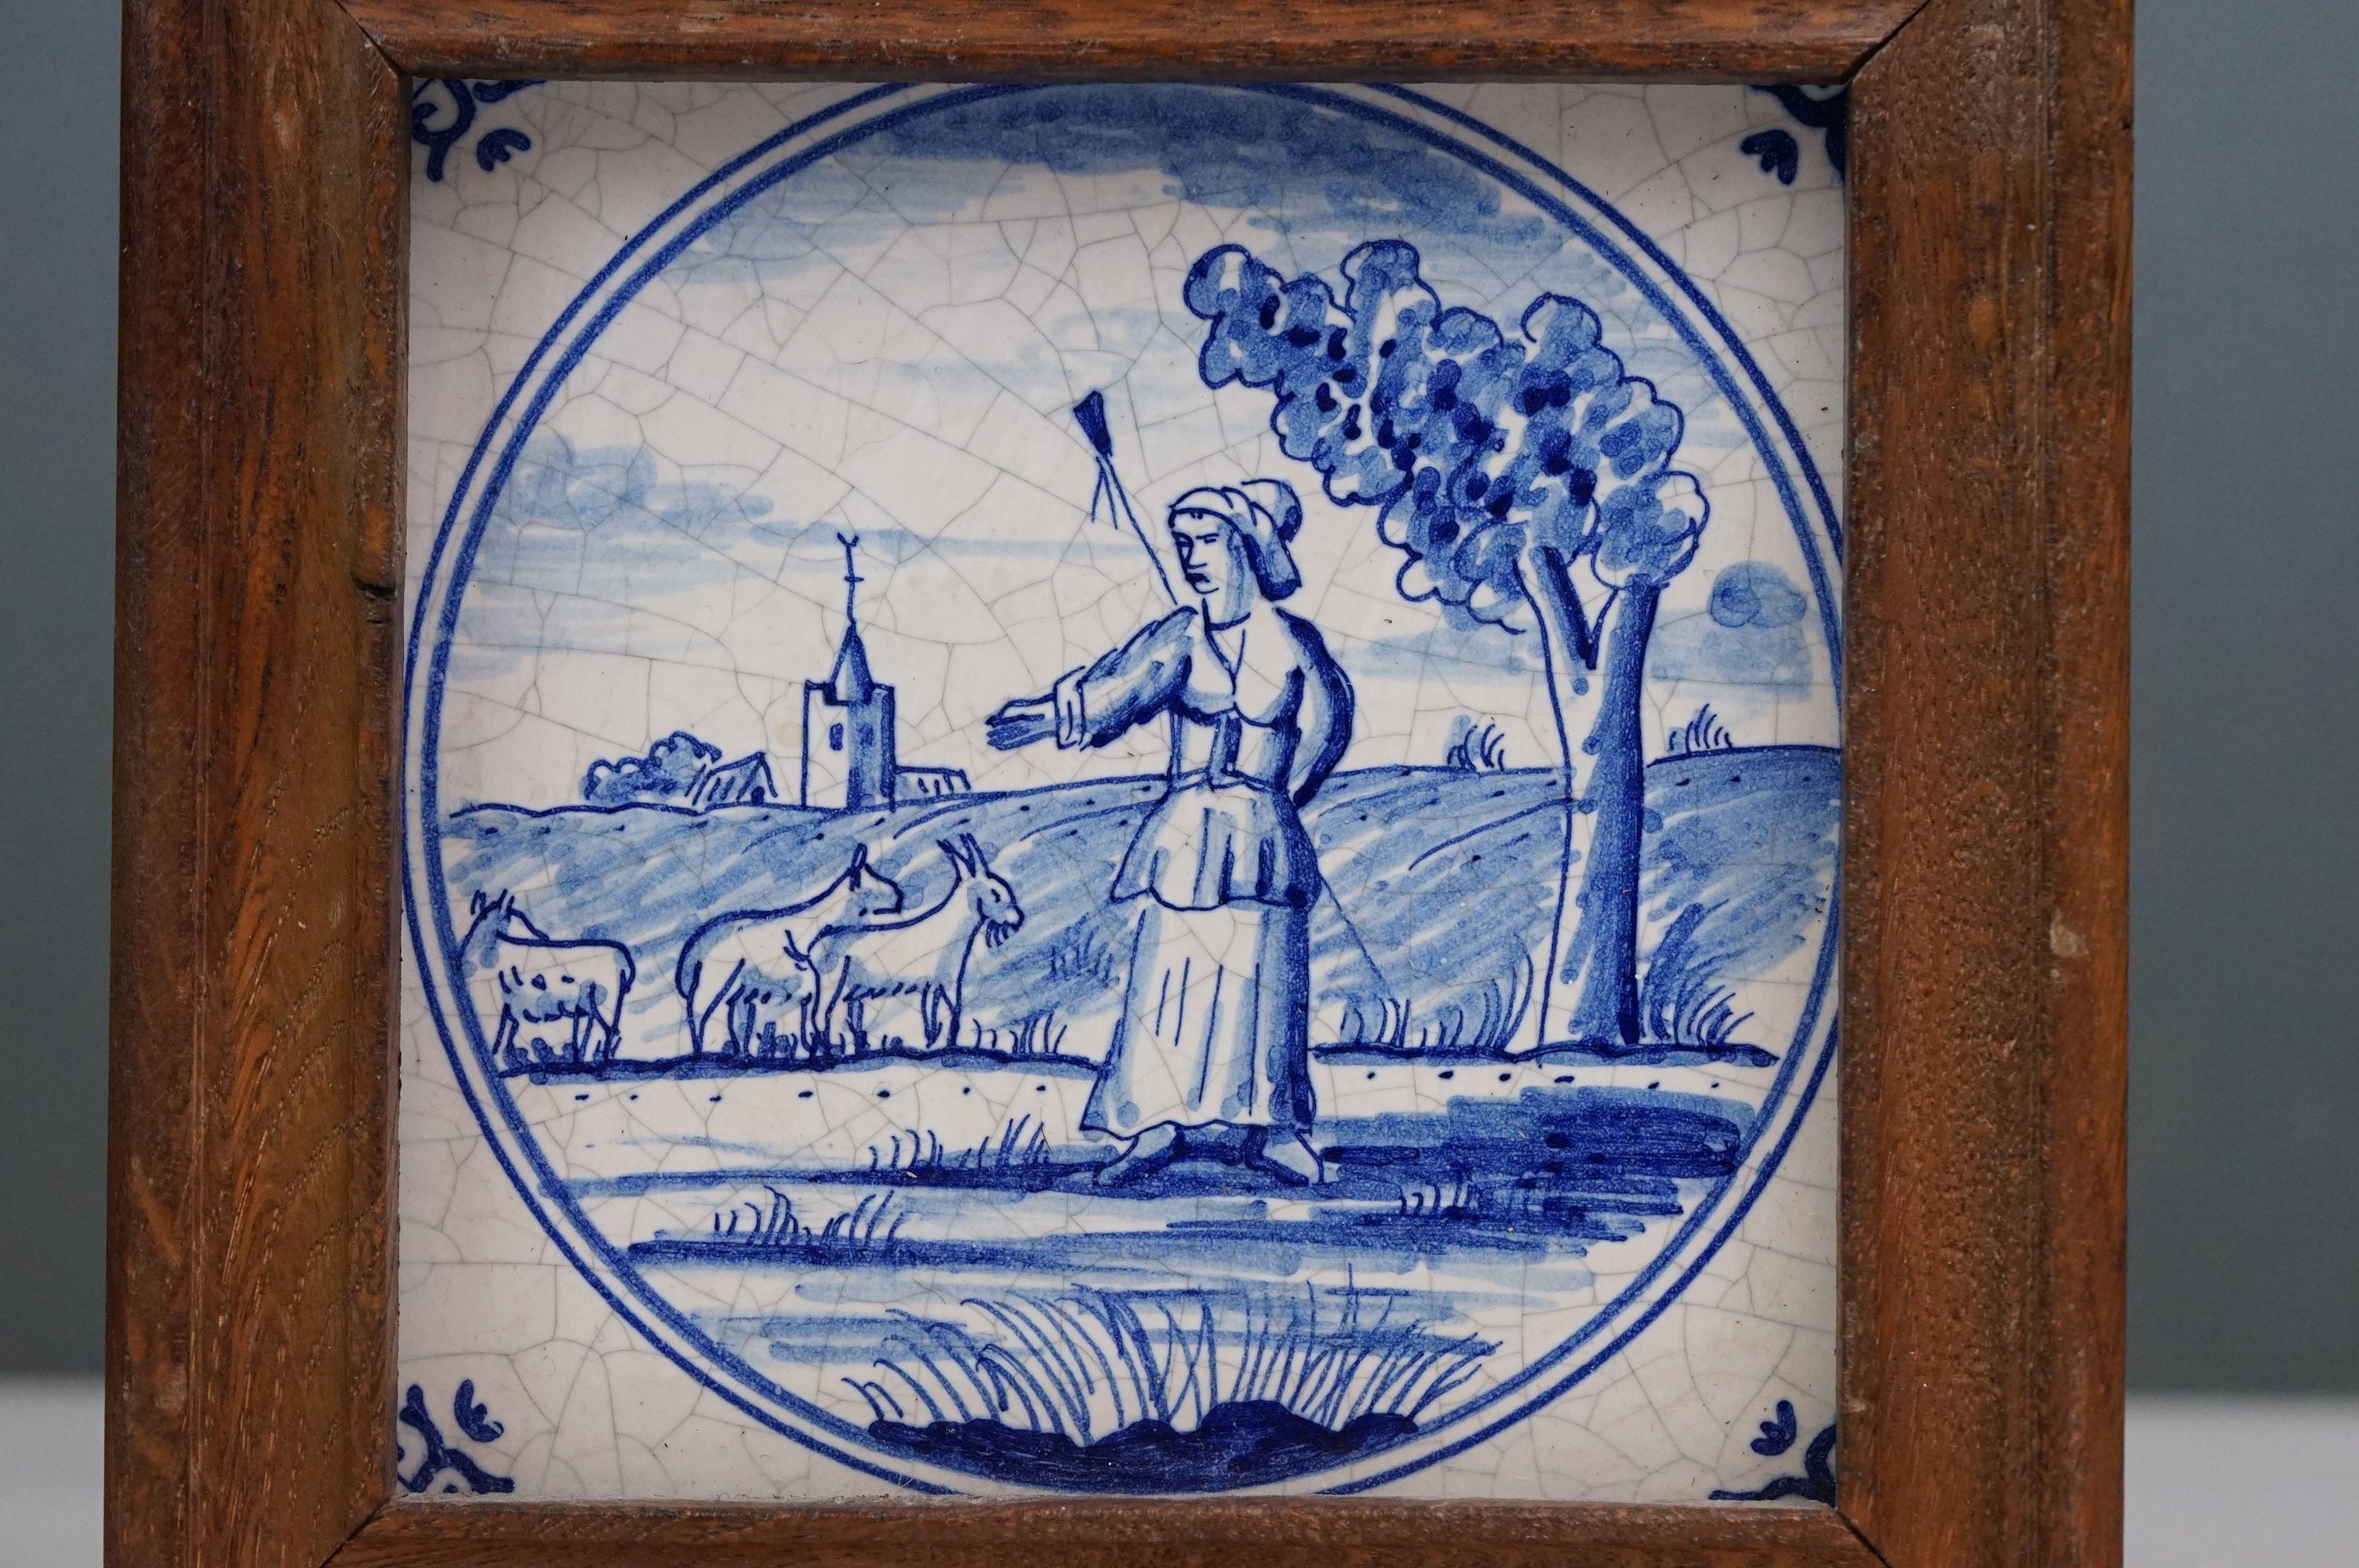 Dutch Delft-style blue and white tile depicting a shepherdess with goats, impressed dove mark to - Image 2 of 4